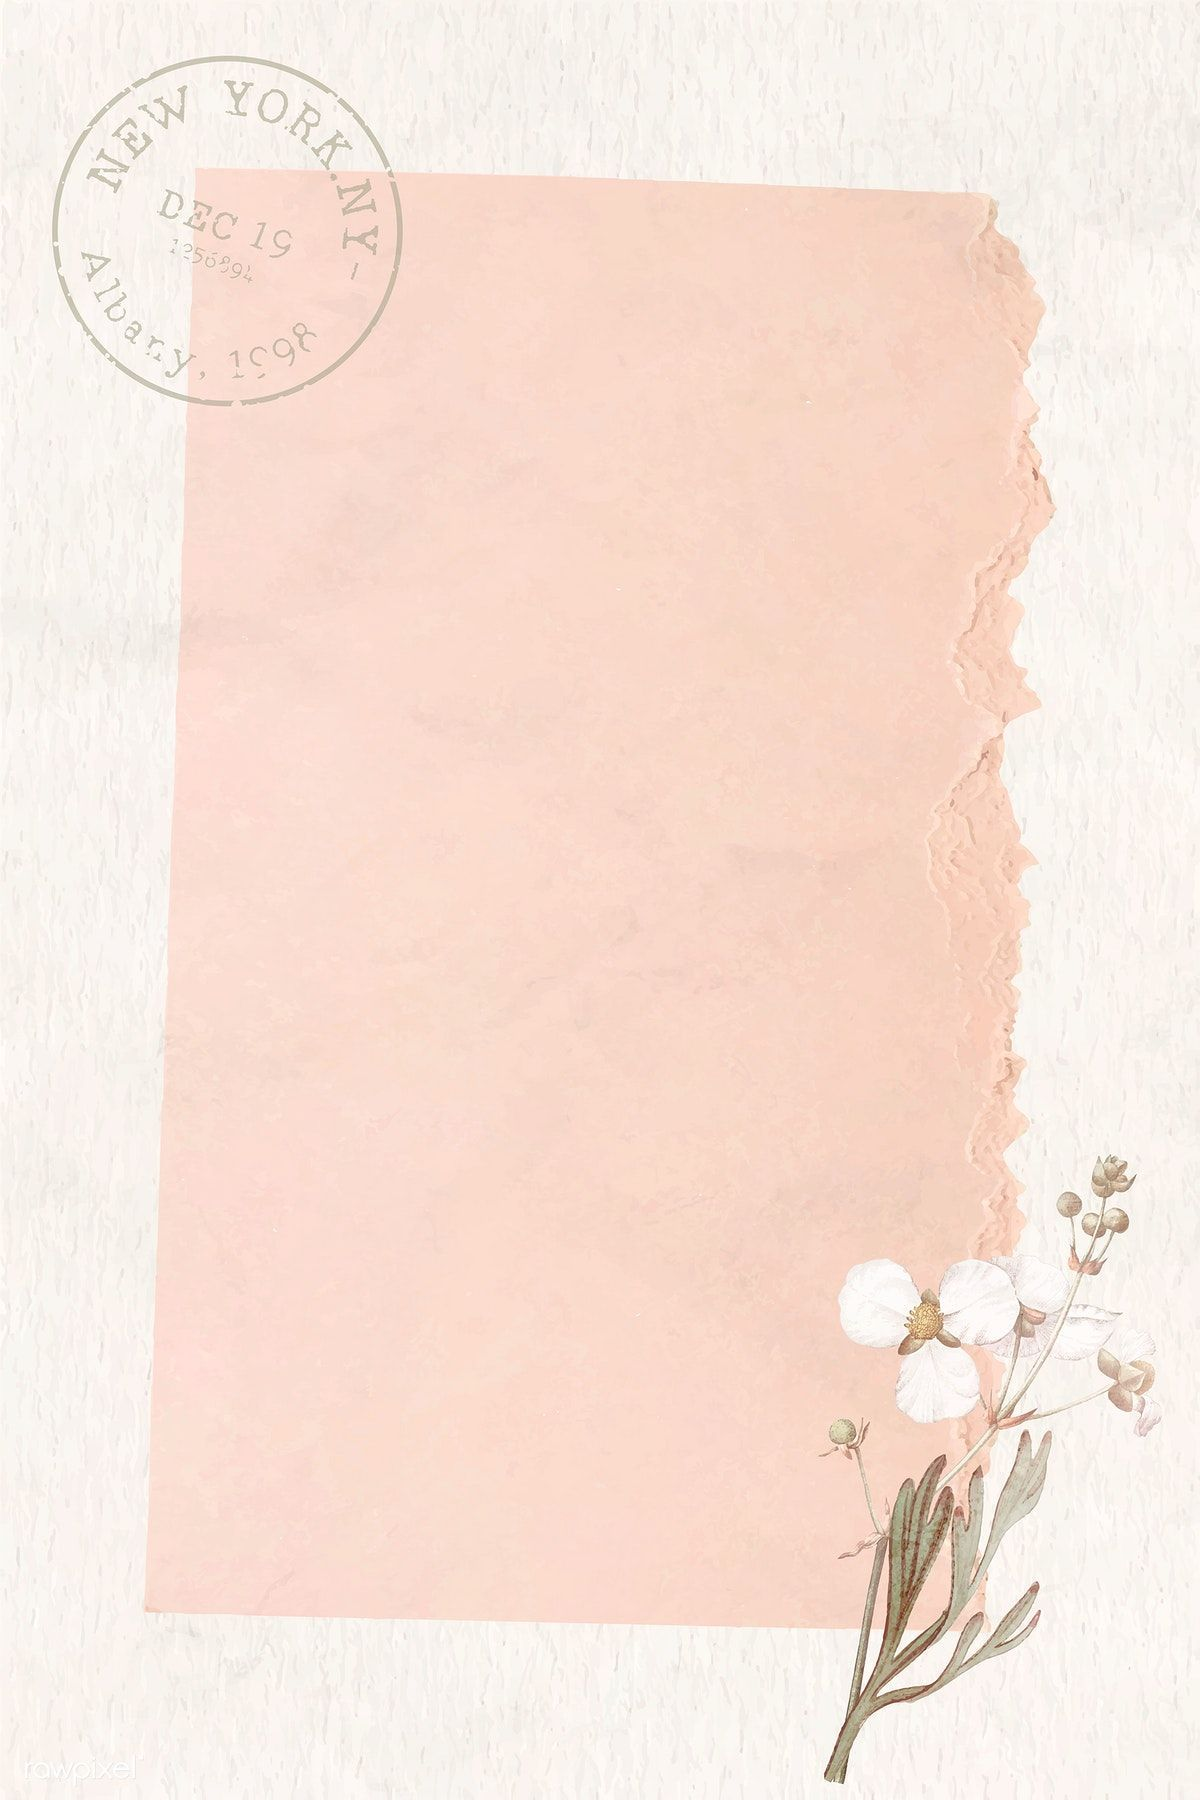 Download premium vector of Crumpled ripped pink paper background vectorbackground